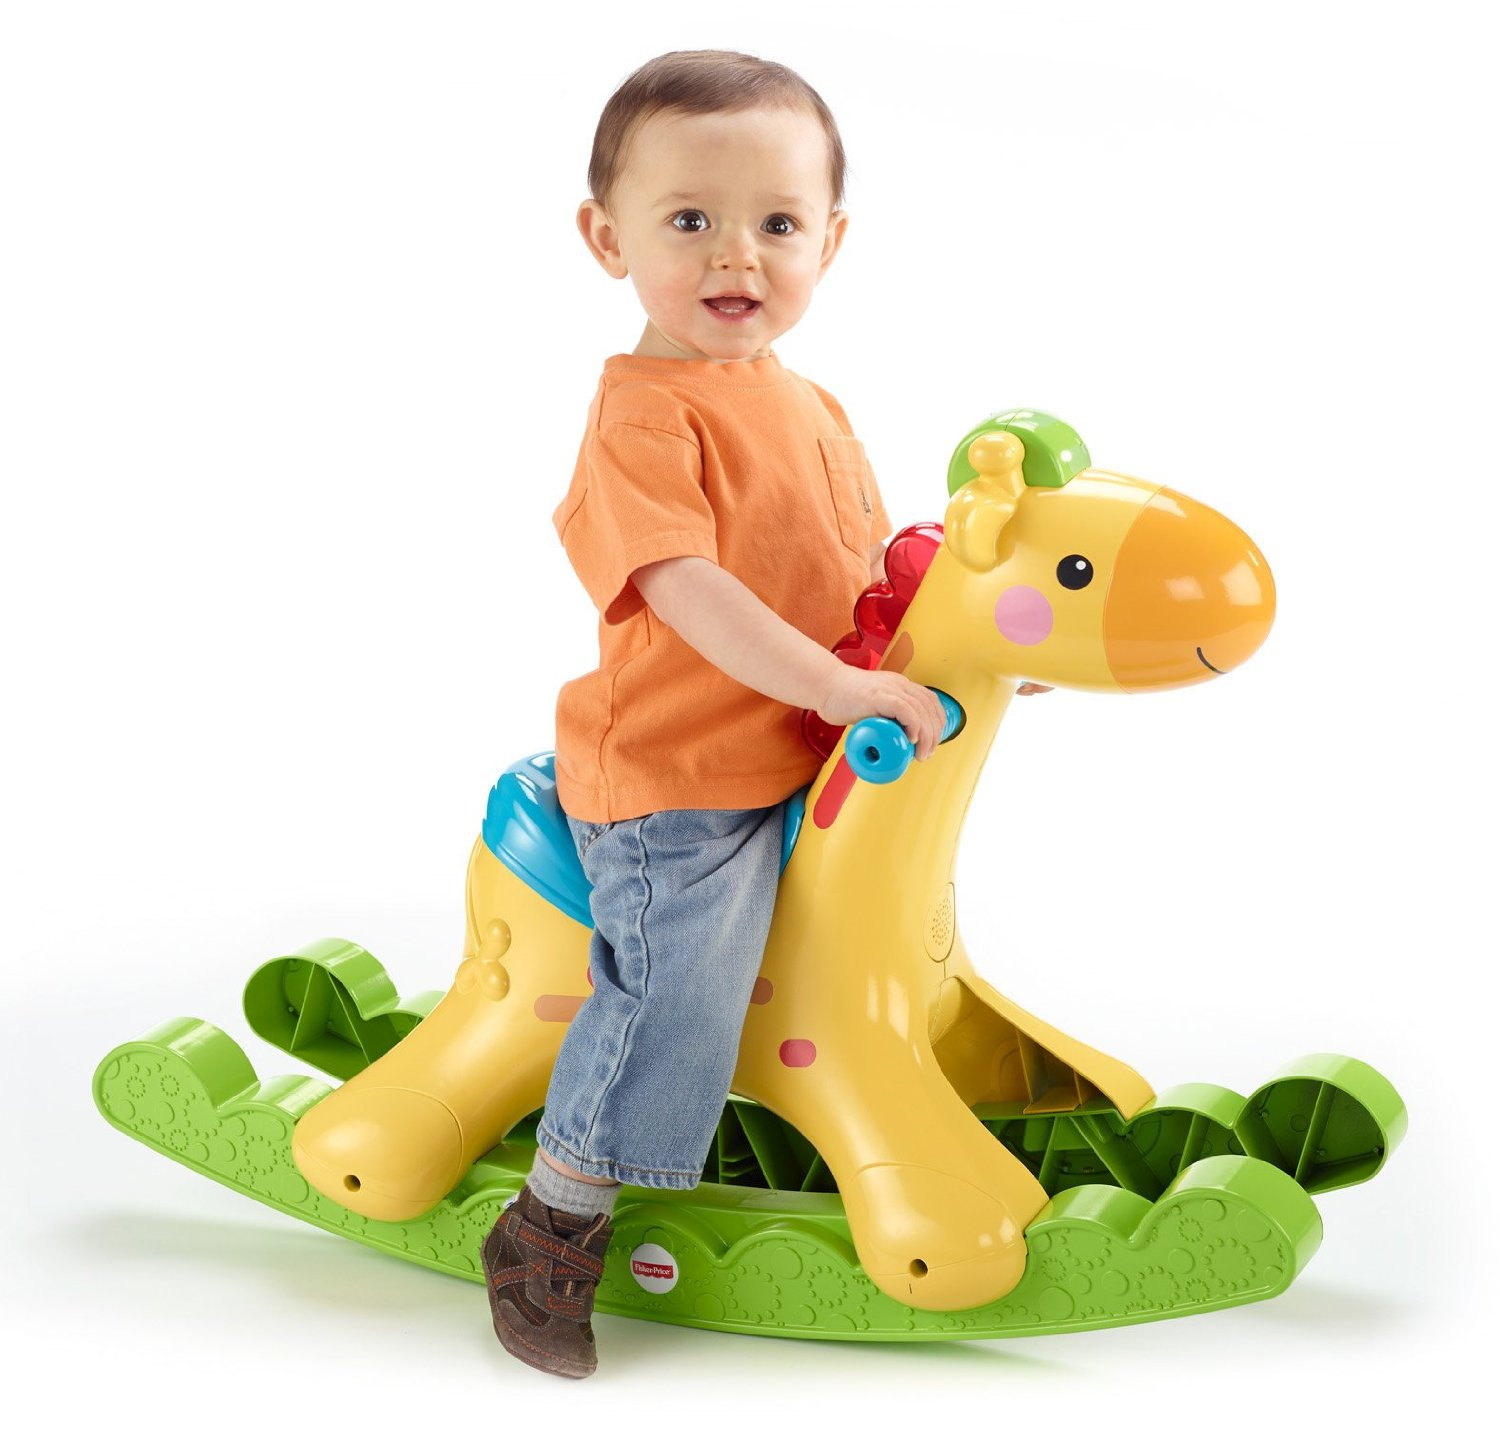 Juguetes Bebe 16 Meses Toys And Baby Products Online